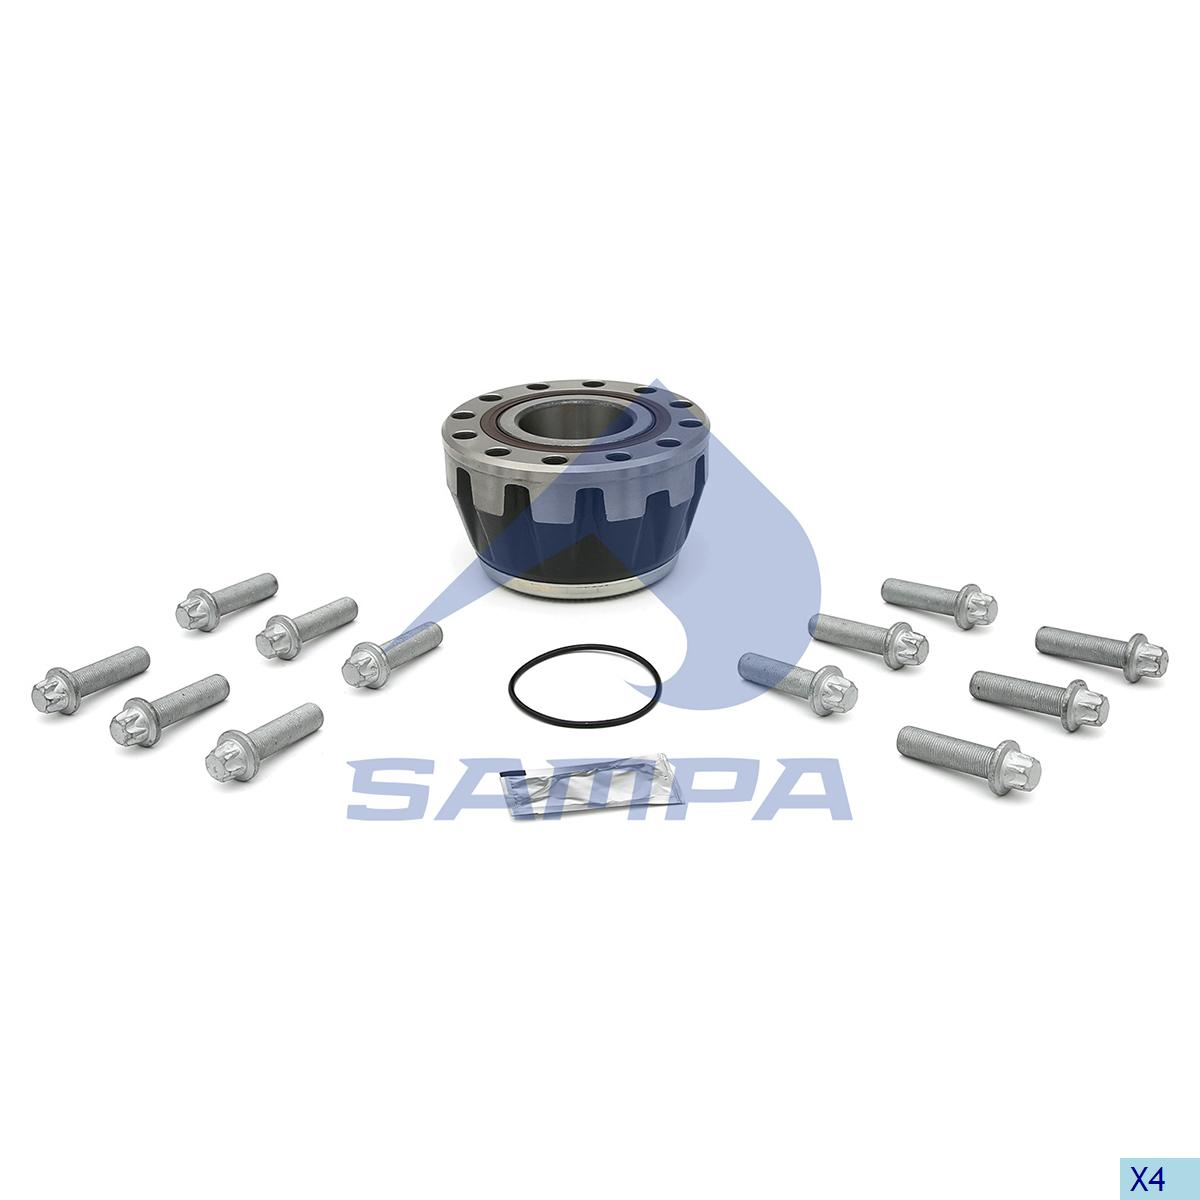 Repair Kit, Wheel Hub, Sauer Achsen, Power Unit